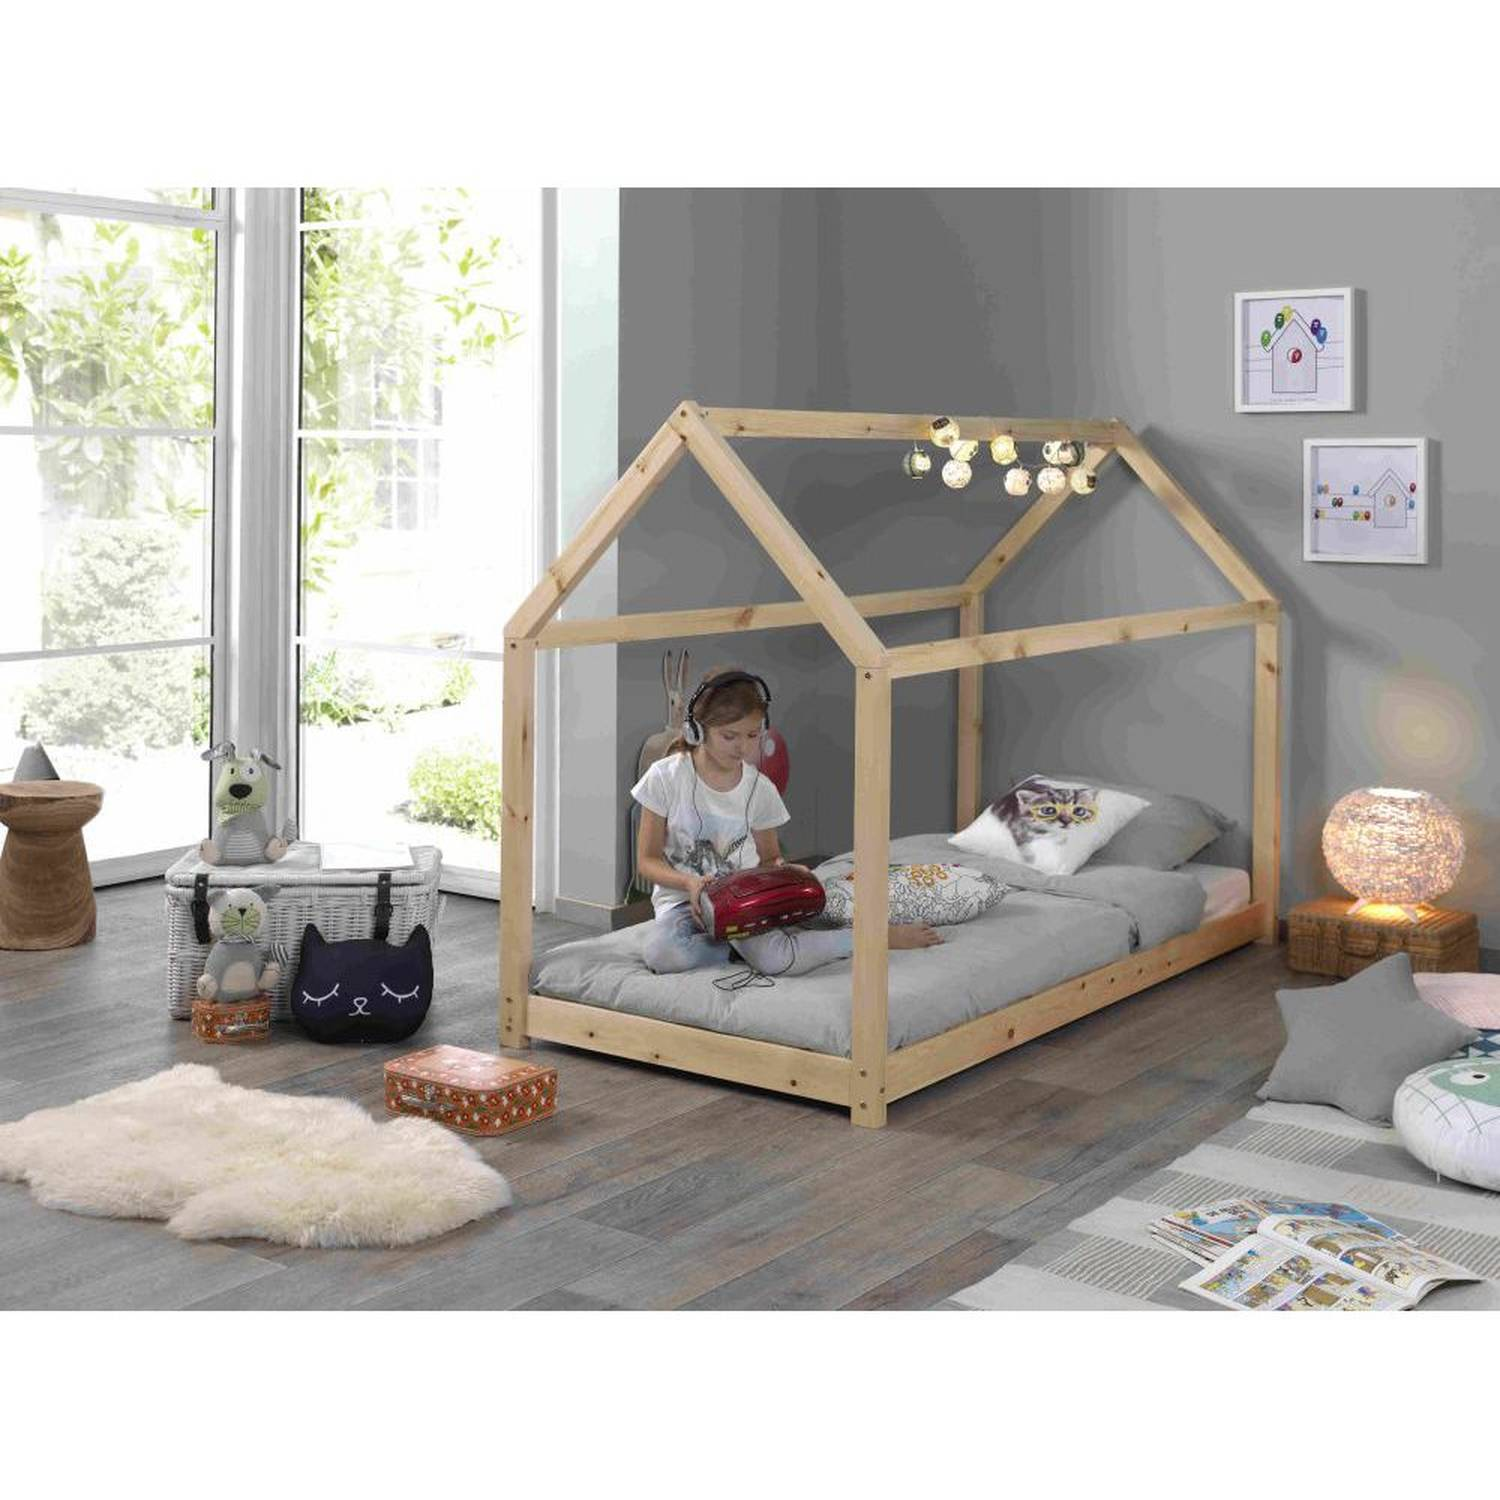 Kids Wooden Single House Bed In Pine Buy Wooden Single Bed Single Beds For Sale Solid Wood Canopy Bed Product On Alibaba Com